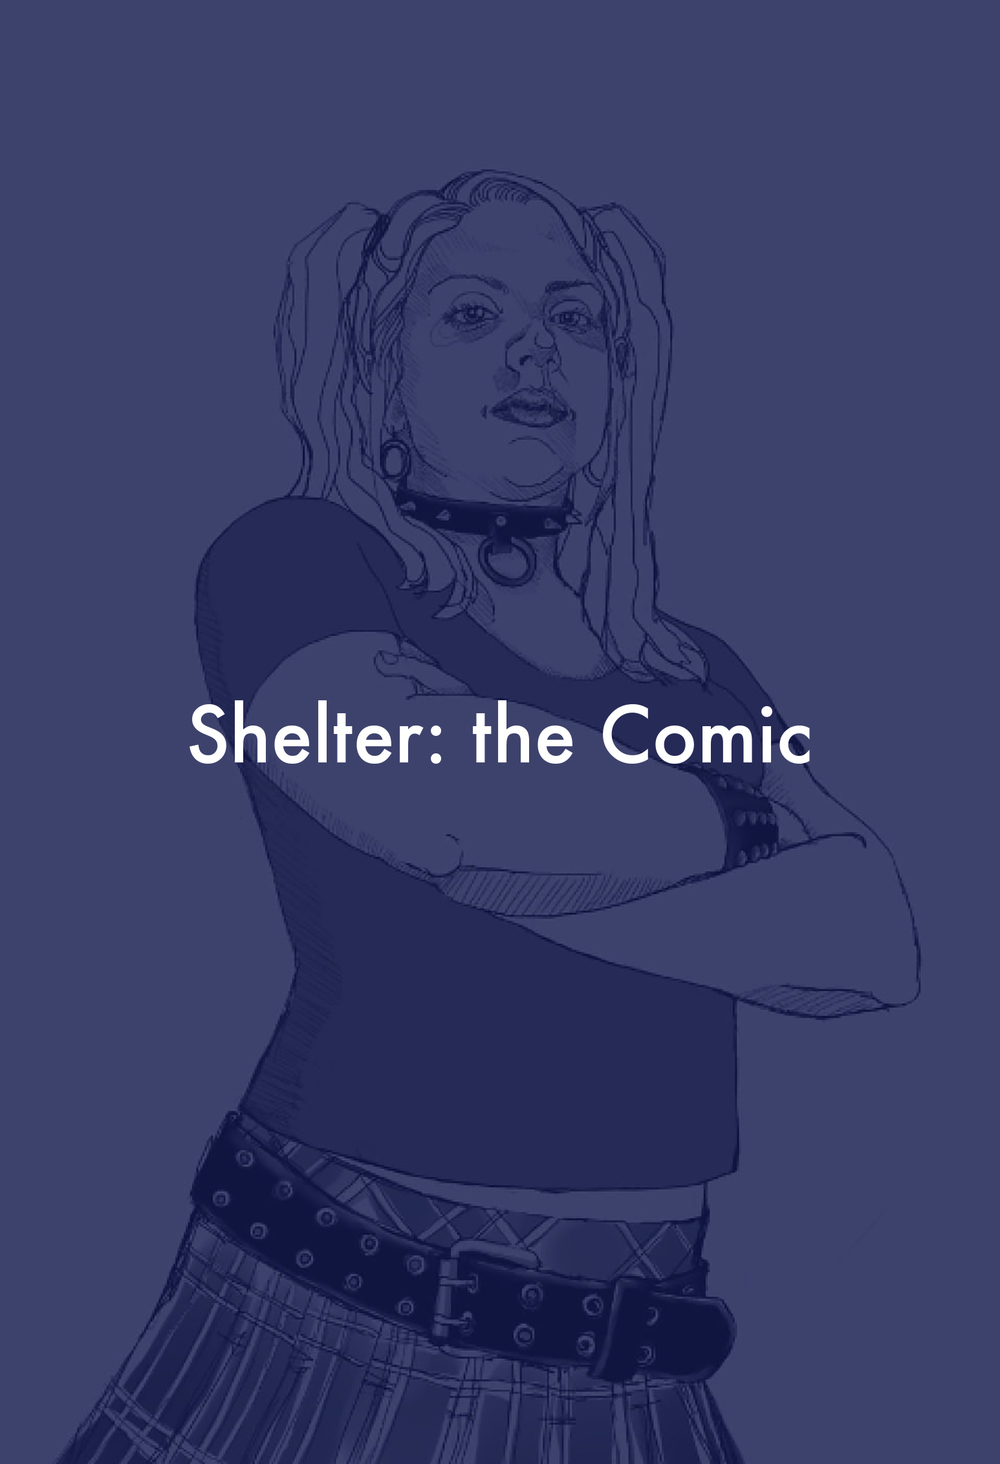 Shelter: the Comic Image - Pauline Conley